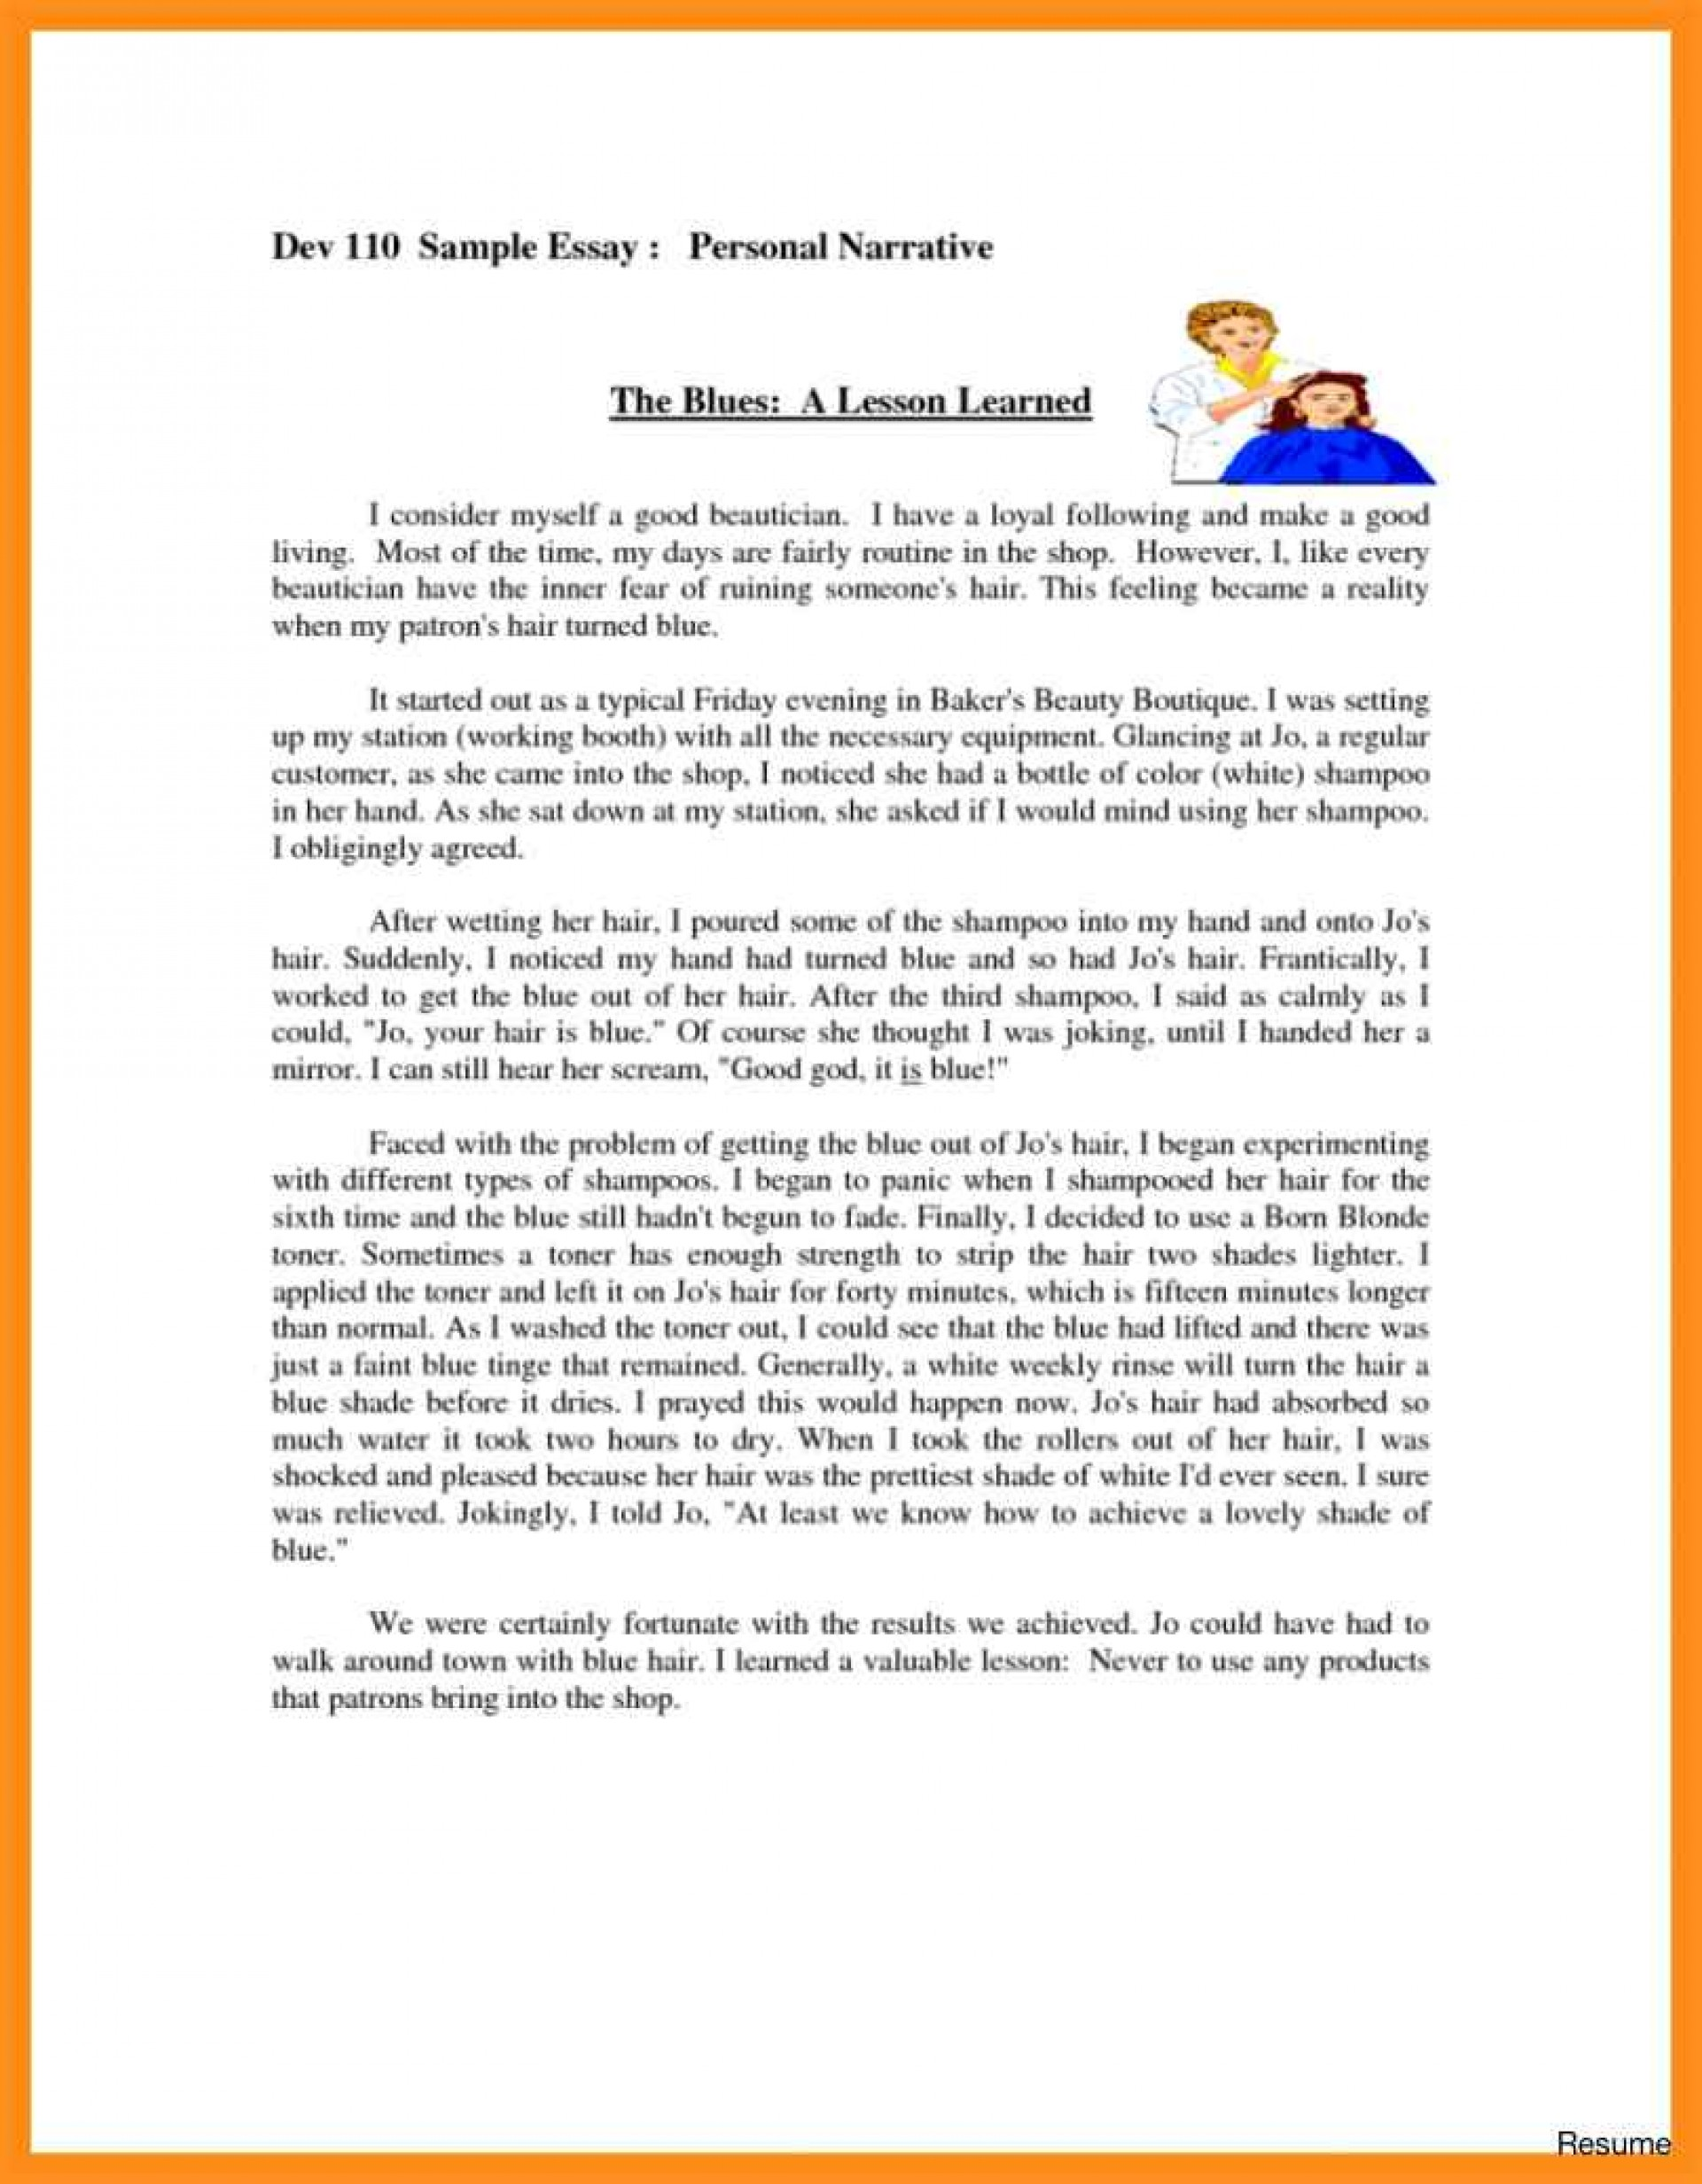 004 Introduce Yourself Essay Sample Words Breathtaking Me Myself And I Examples Template Example 936x1211 Resize8002c1035 Resize About Resume Dreaded 100 1920